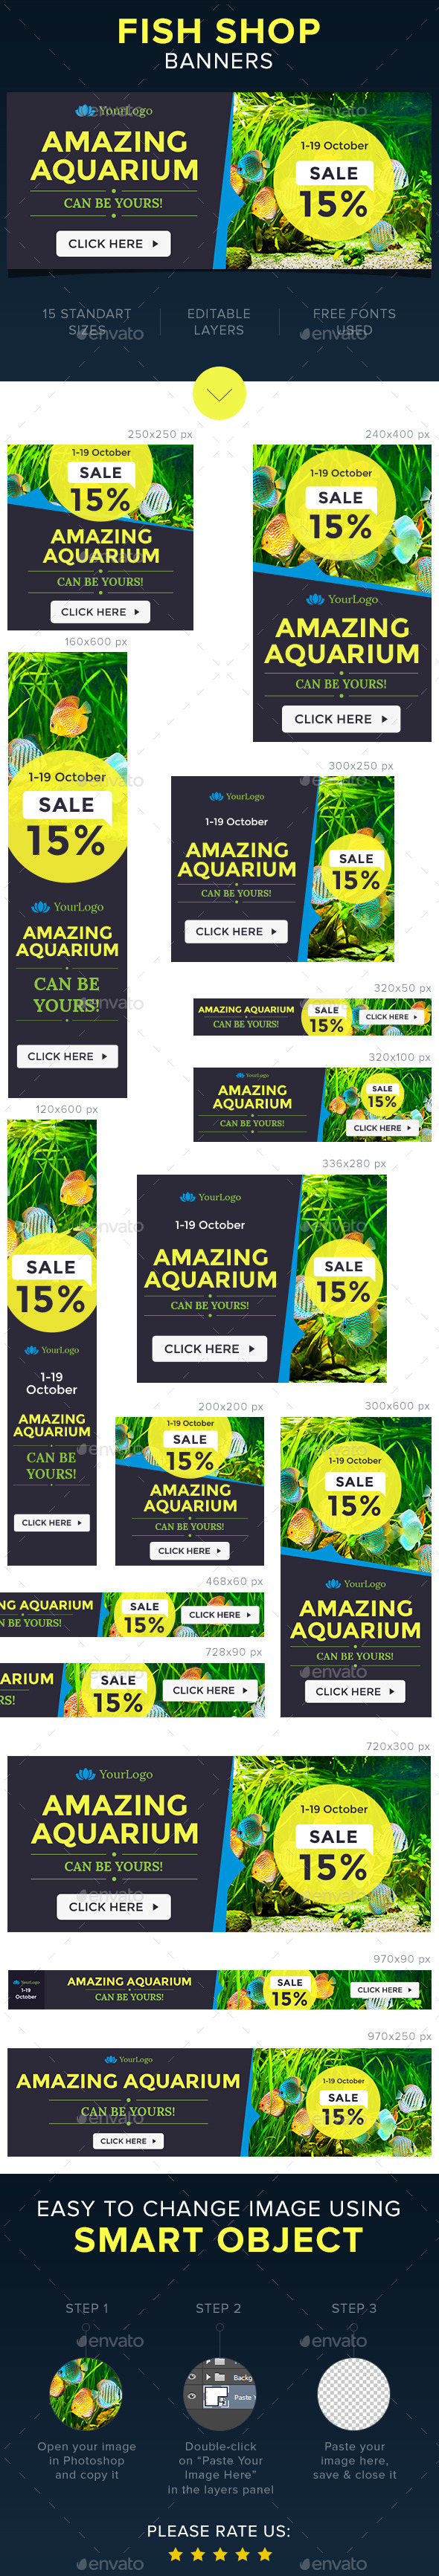 Fish Shop Banners - Banners & Ads Web Elements